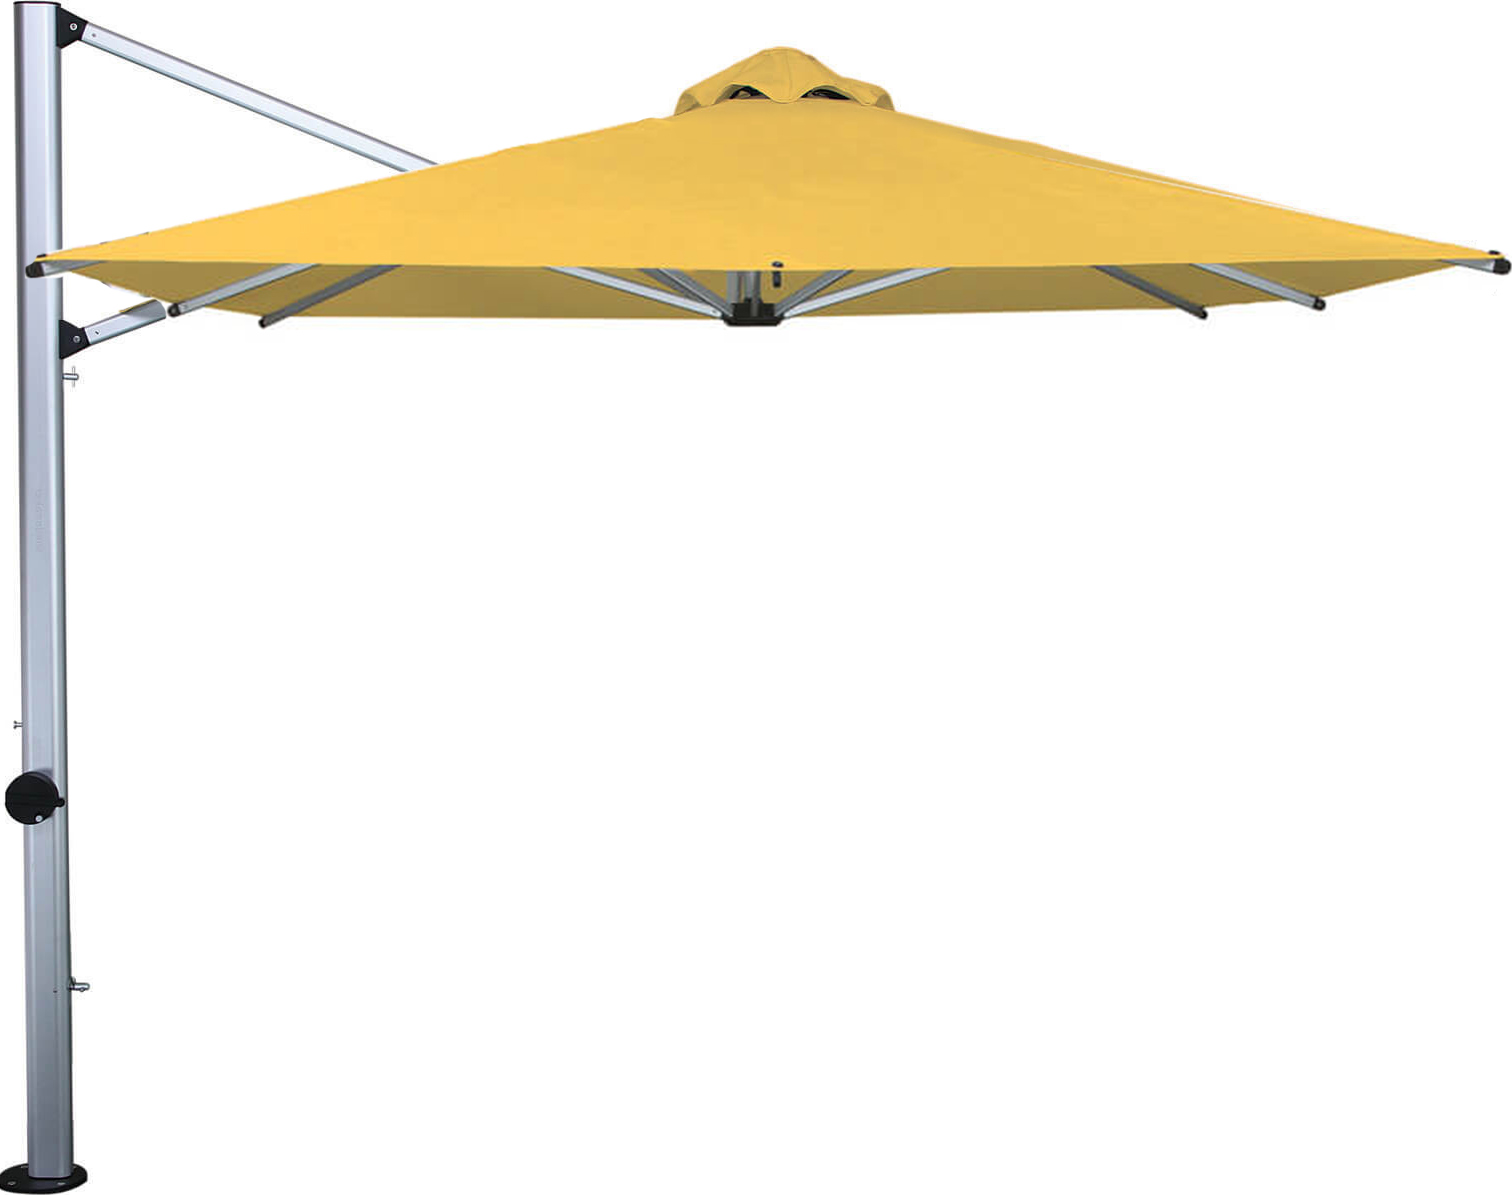 Garden Treasures Offset Umbrella | Garden Treasures Canopy | Patio Umbrella Replacement Canopy